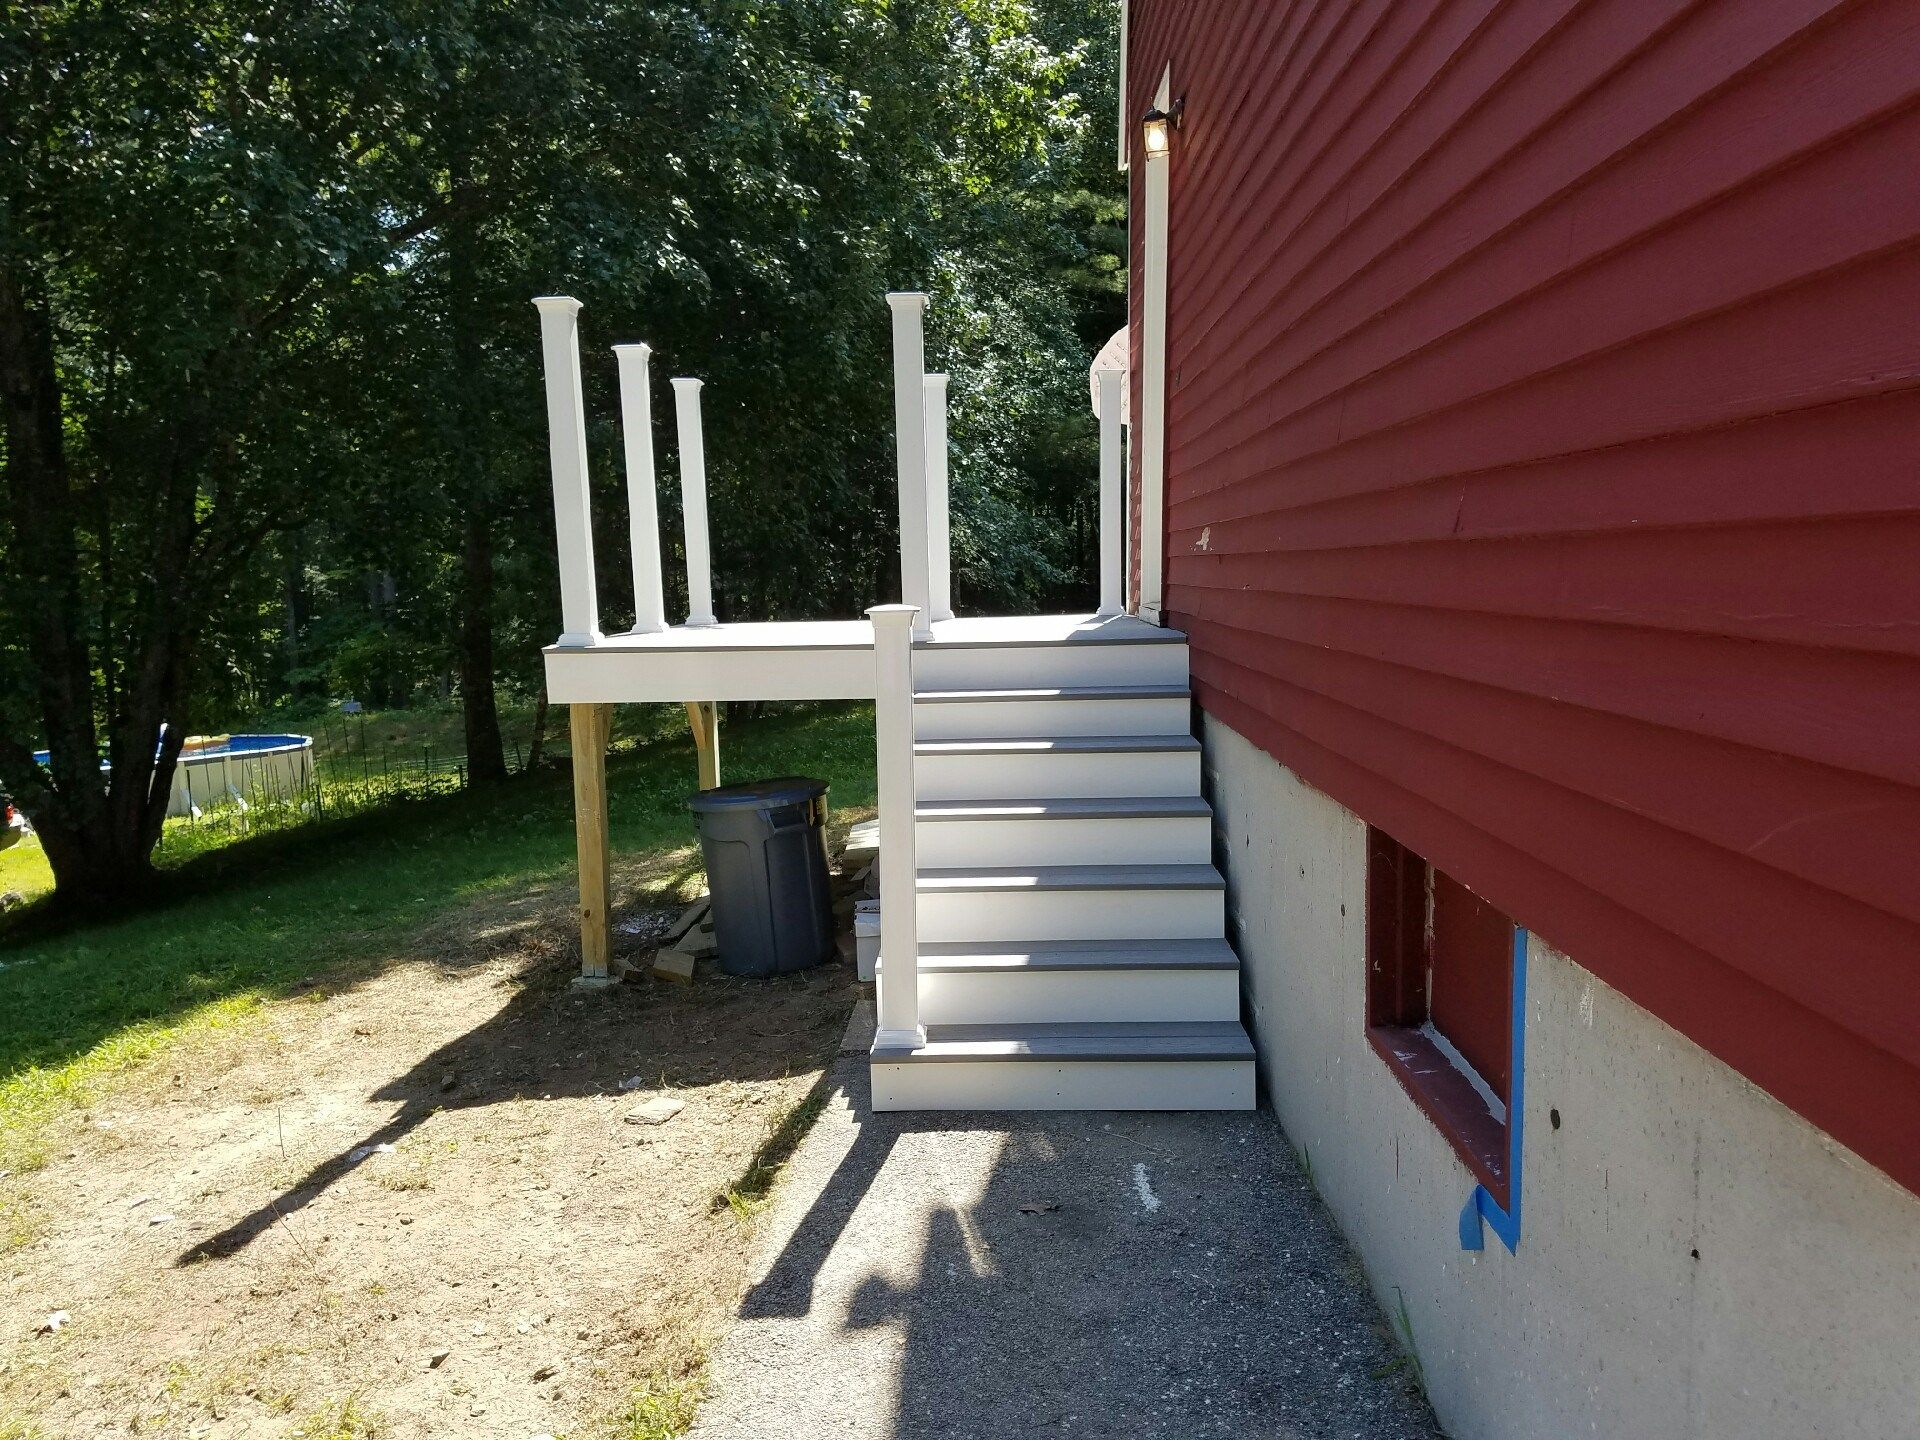 8x8 Composite Deck, Double Stairway - Picture 7314